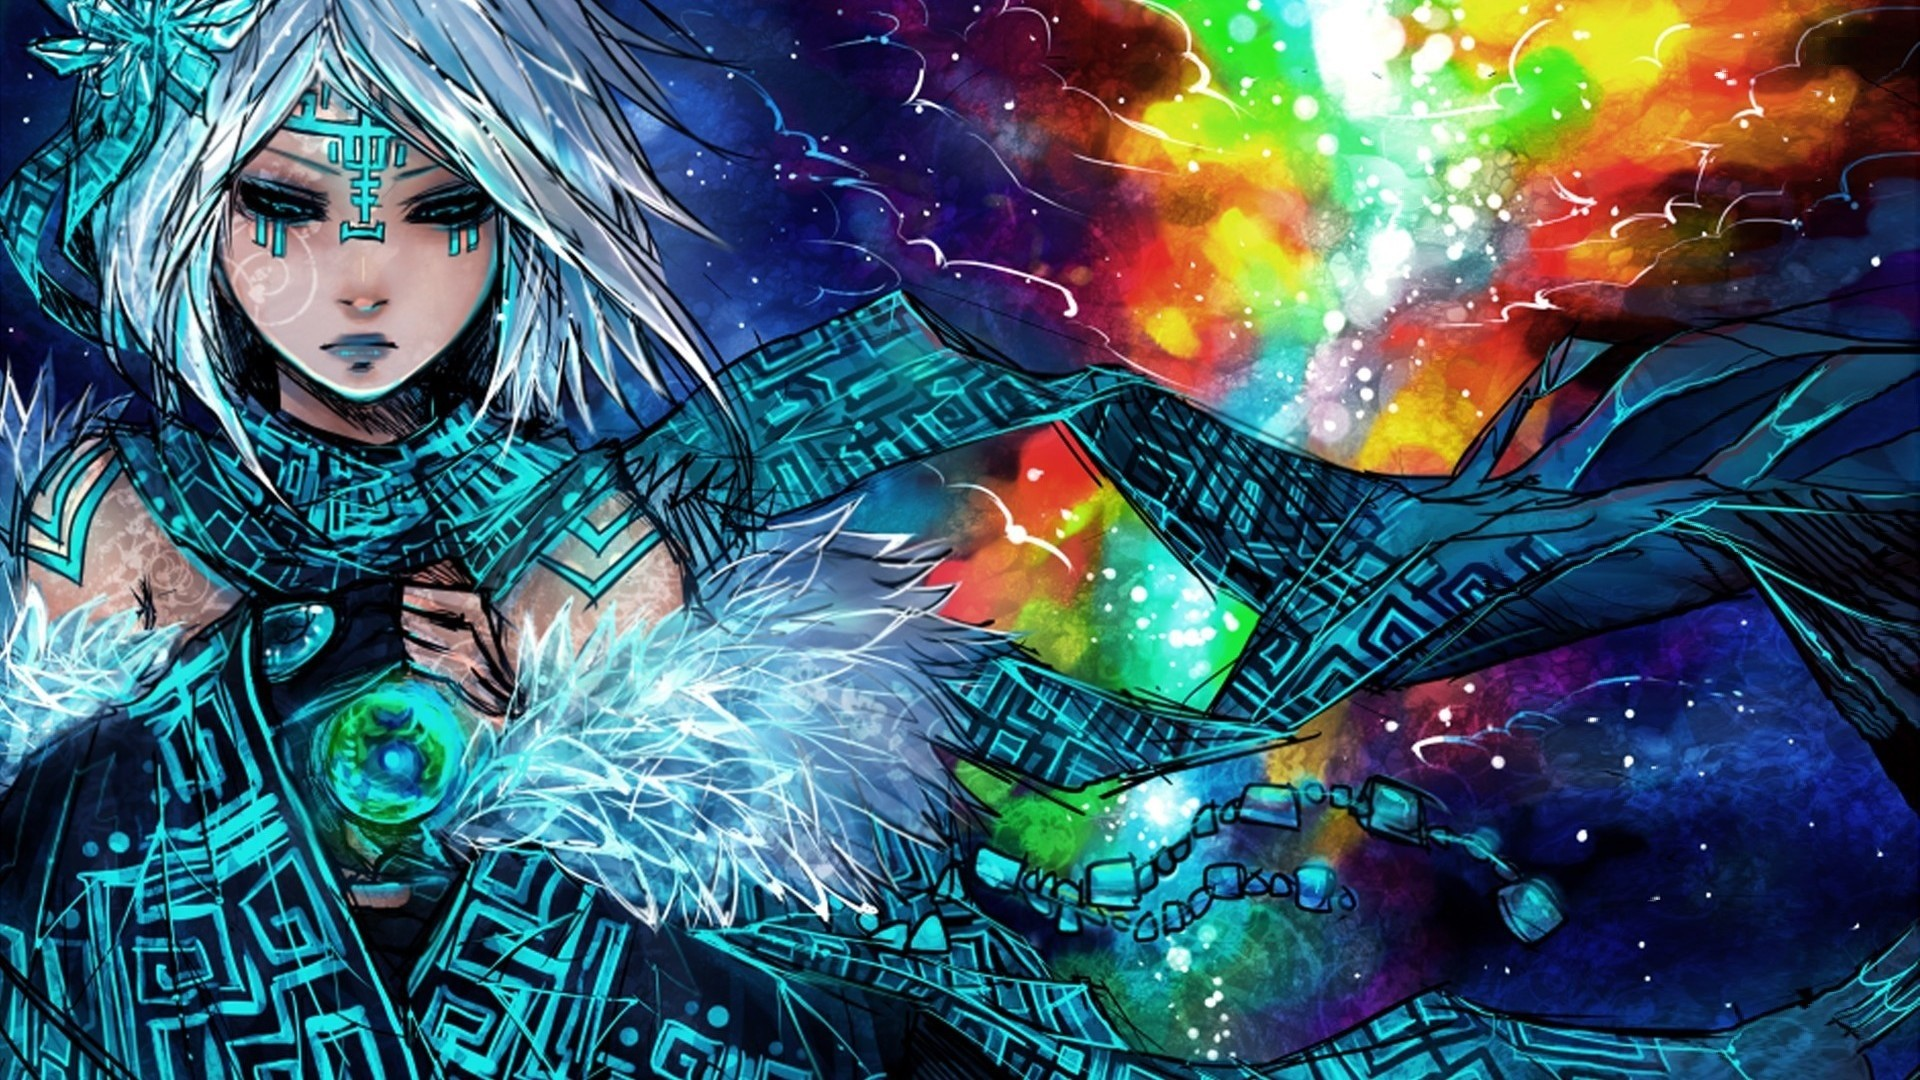 Awesome Anime Wallpaper 1366 X 768 Android Download